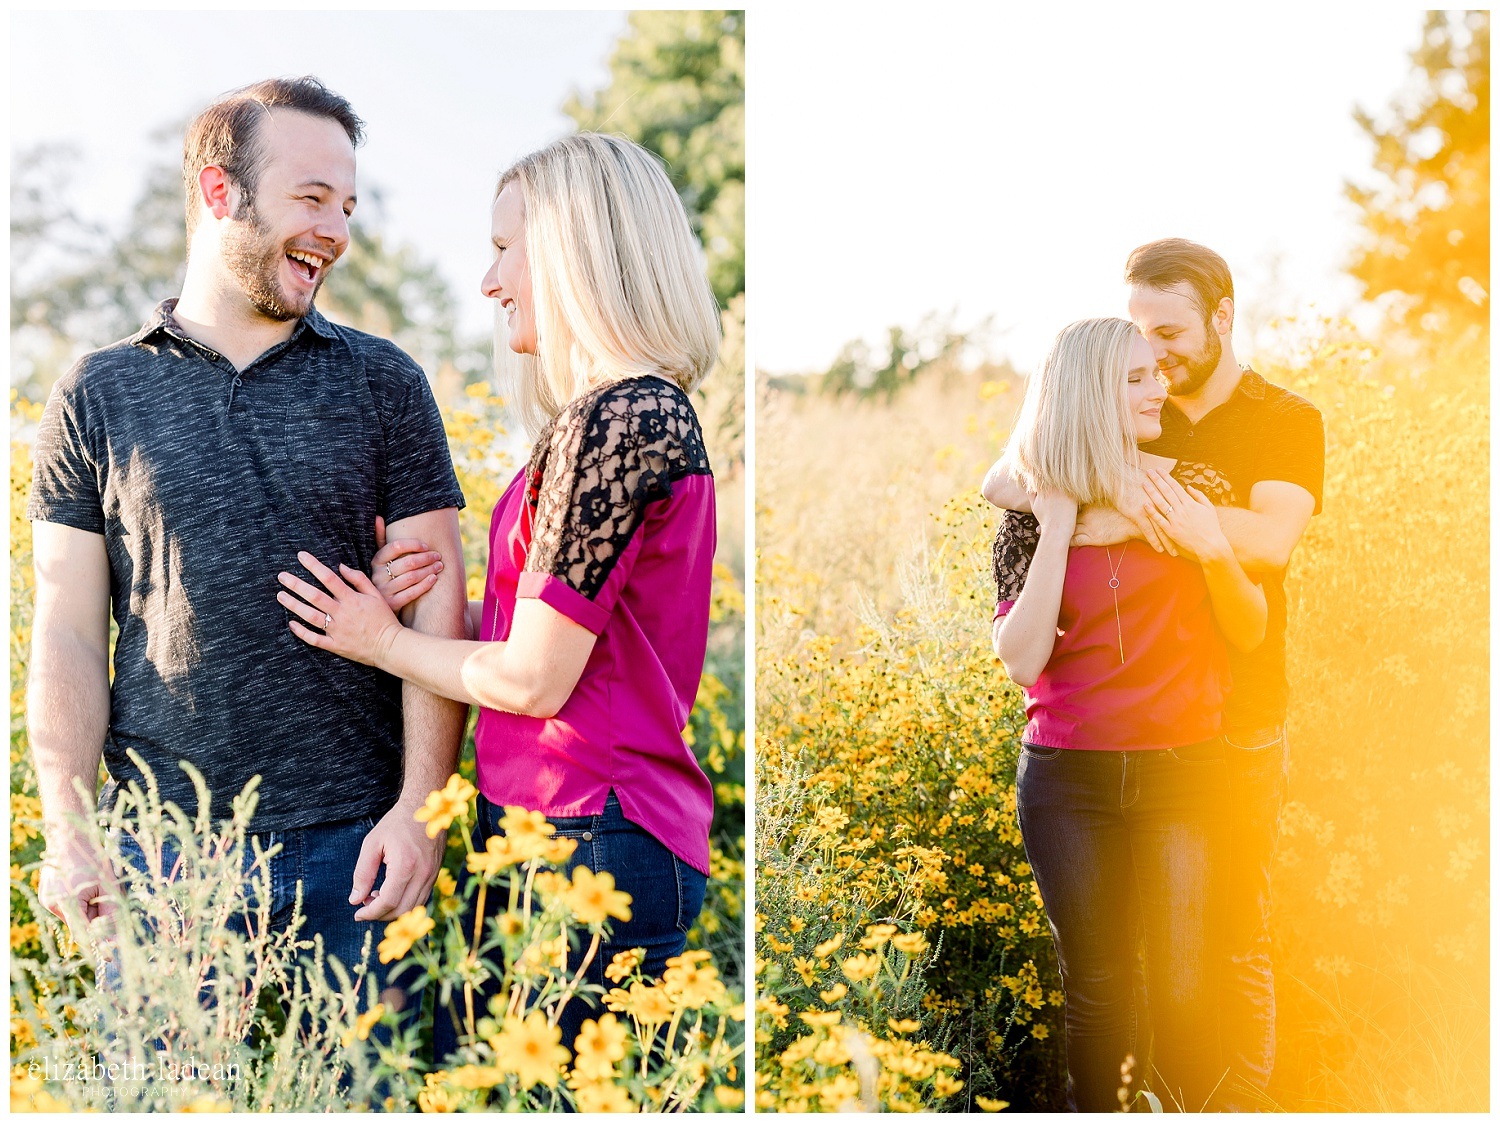 Kansas-City-Adventurous-Engagement-Photos-S+C2018-elizabeth-ladean-photography-photo_0382.jpg